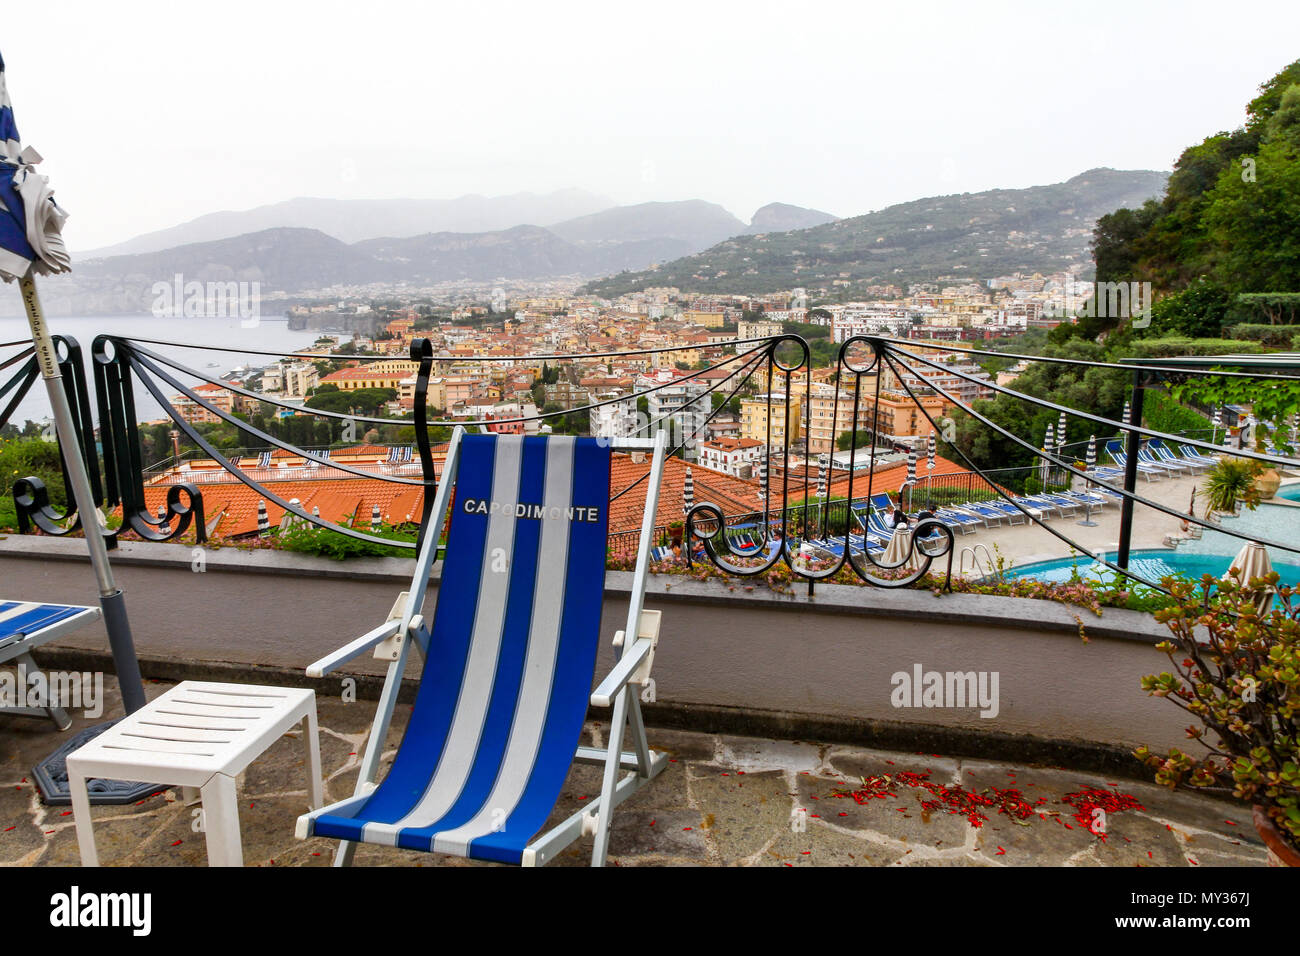 A blue and white striped deck chair with a view of the Bay of Naples in the background at the Grand Hotel Capodimonte, Sorrento, Italy - Stock Image